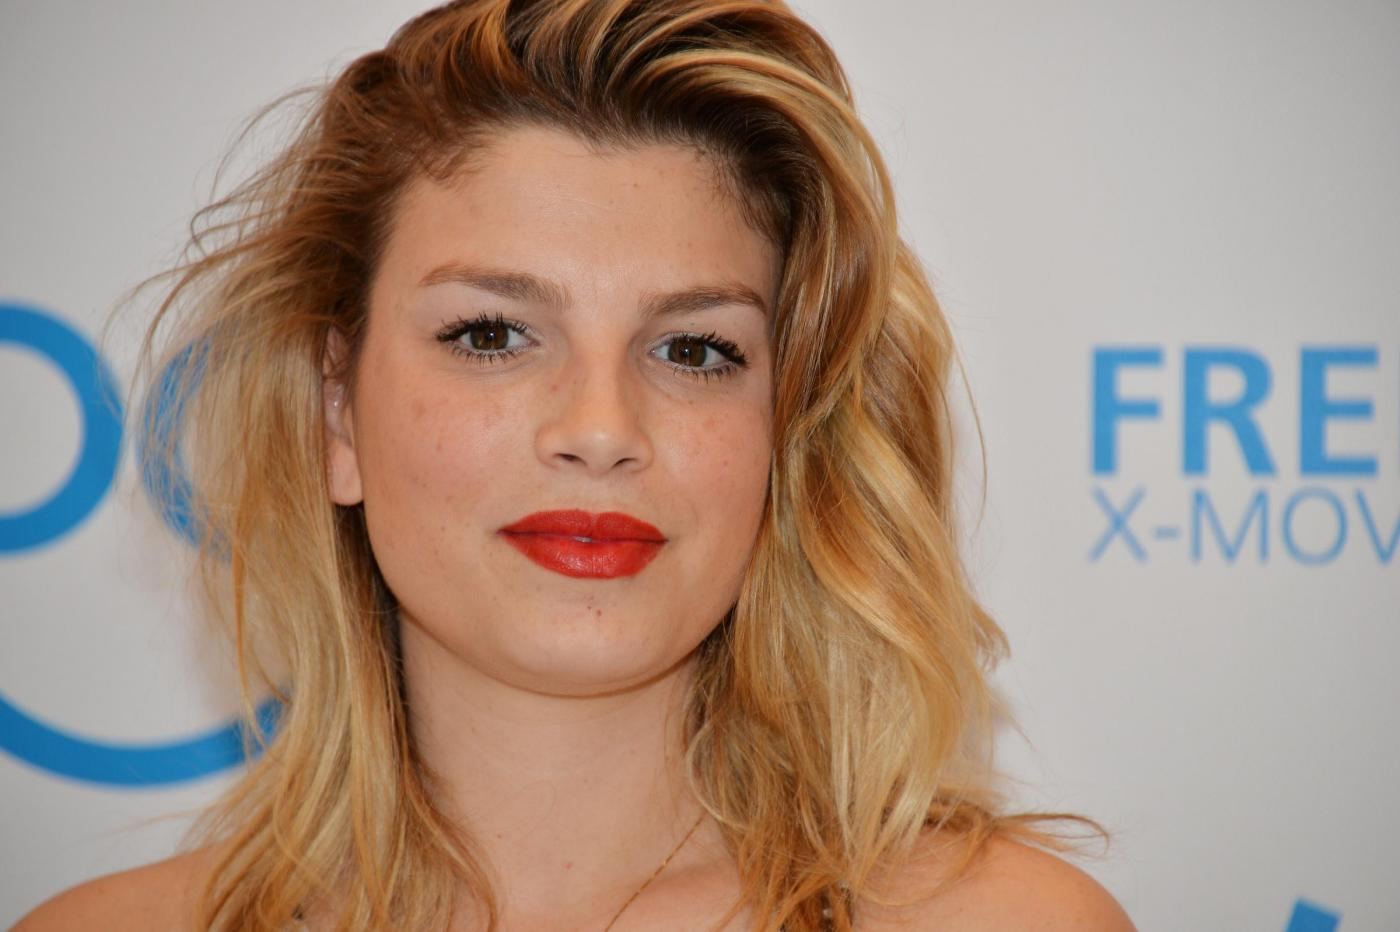 Images Emma Marrone naked (32 photos), Tits, Fappening, Feet, swimsuit 2006